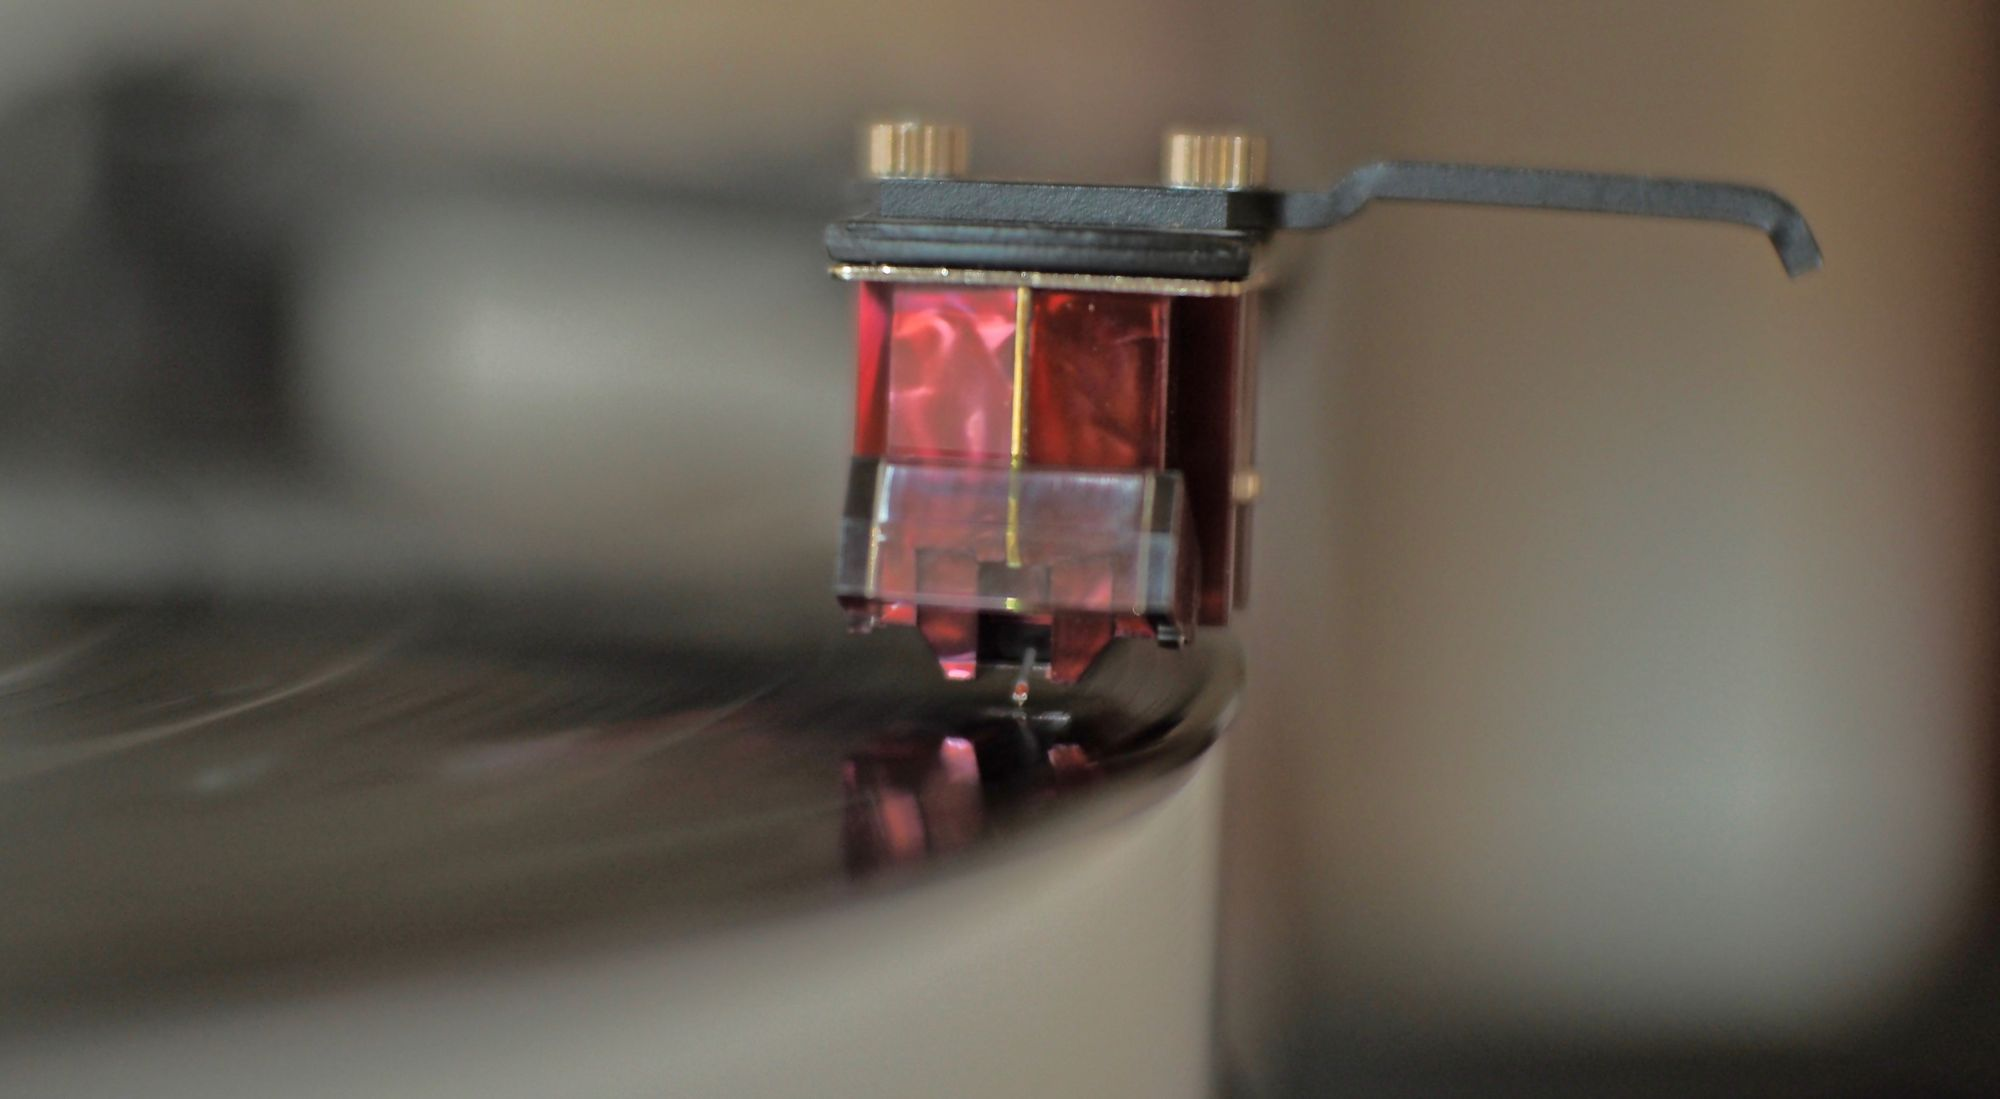 Image showing a close-up of the Denon DL-110 whilst playing a record